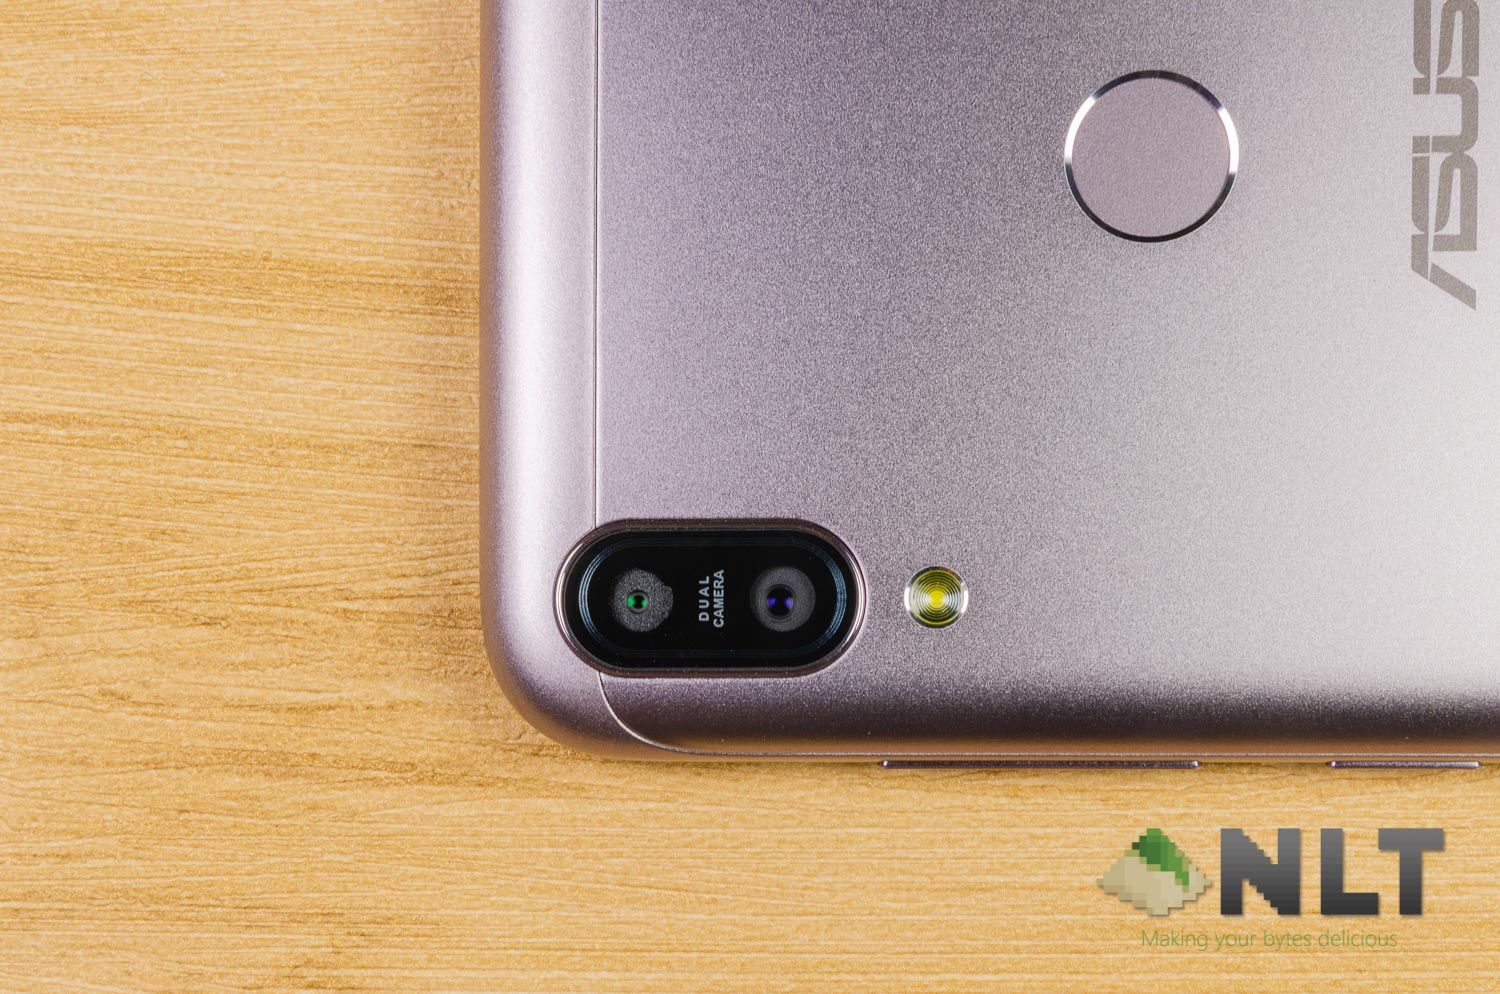 UPDATE] ASUS ZenFone Max Pro (M1)'s Camera Has Full Manual